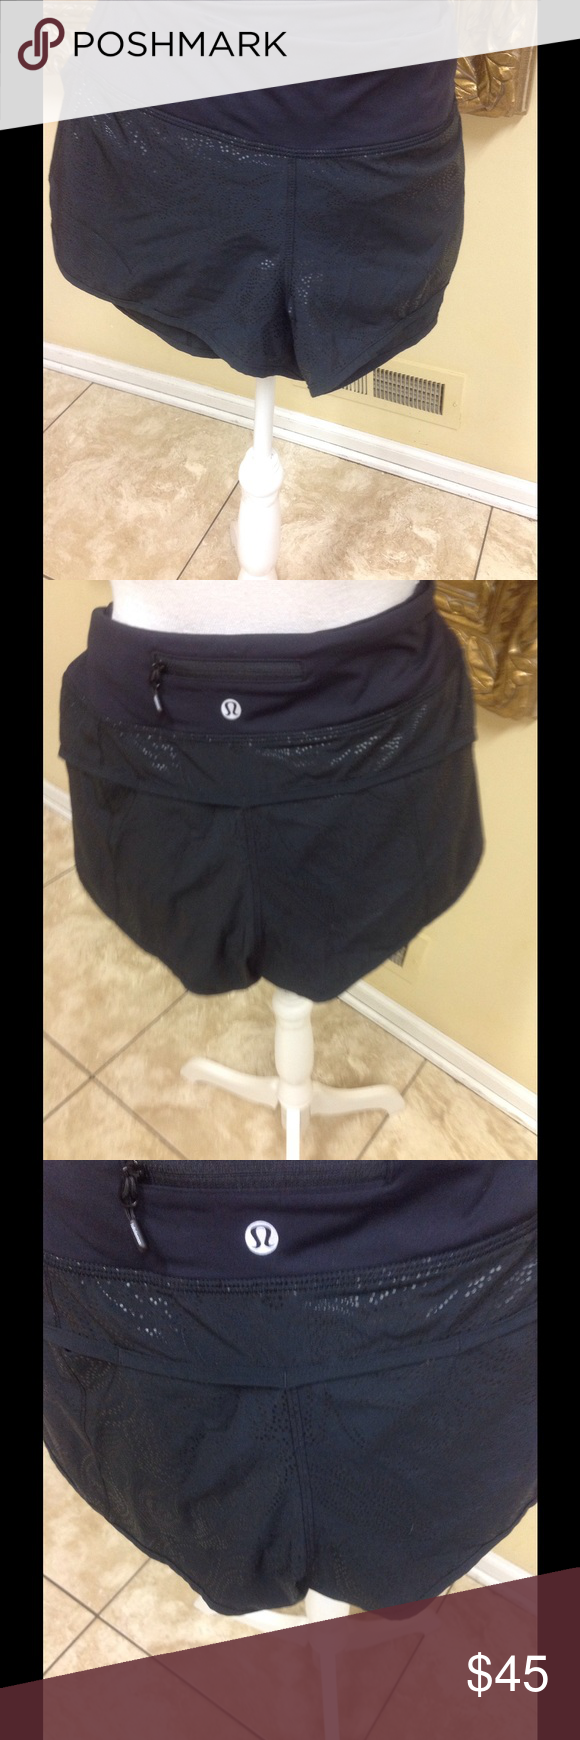 Lululemon Stretch Shorts Size 8 Adorable black shorts by Lululemon size 8. Zipper back, stretch fabric, classic style, beautiful condition, low price. Questions please contact me. lululemon athletica Shorts